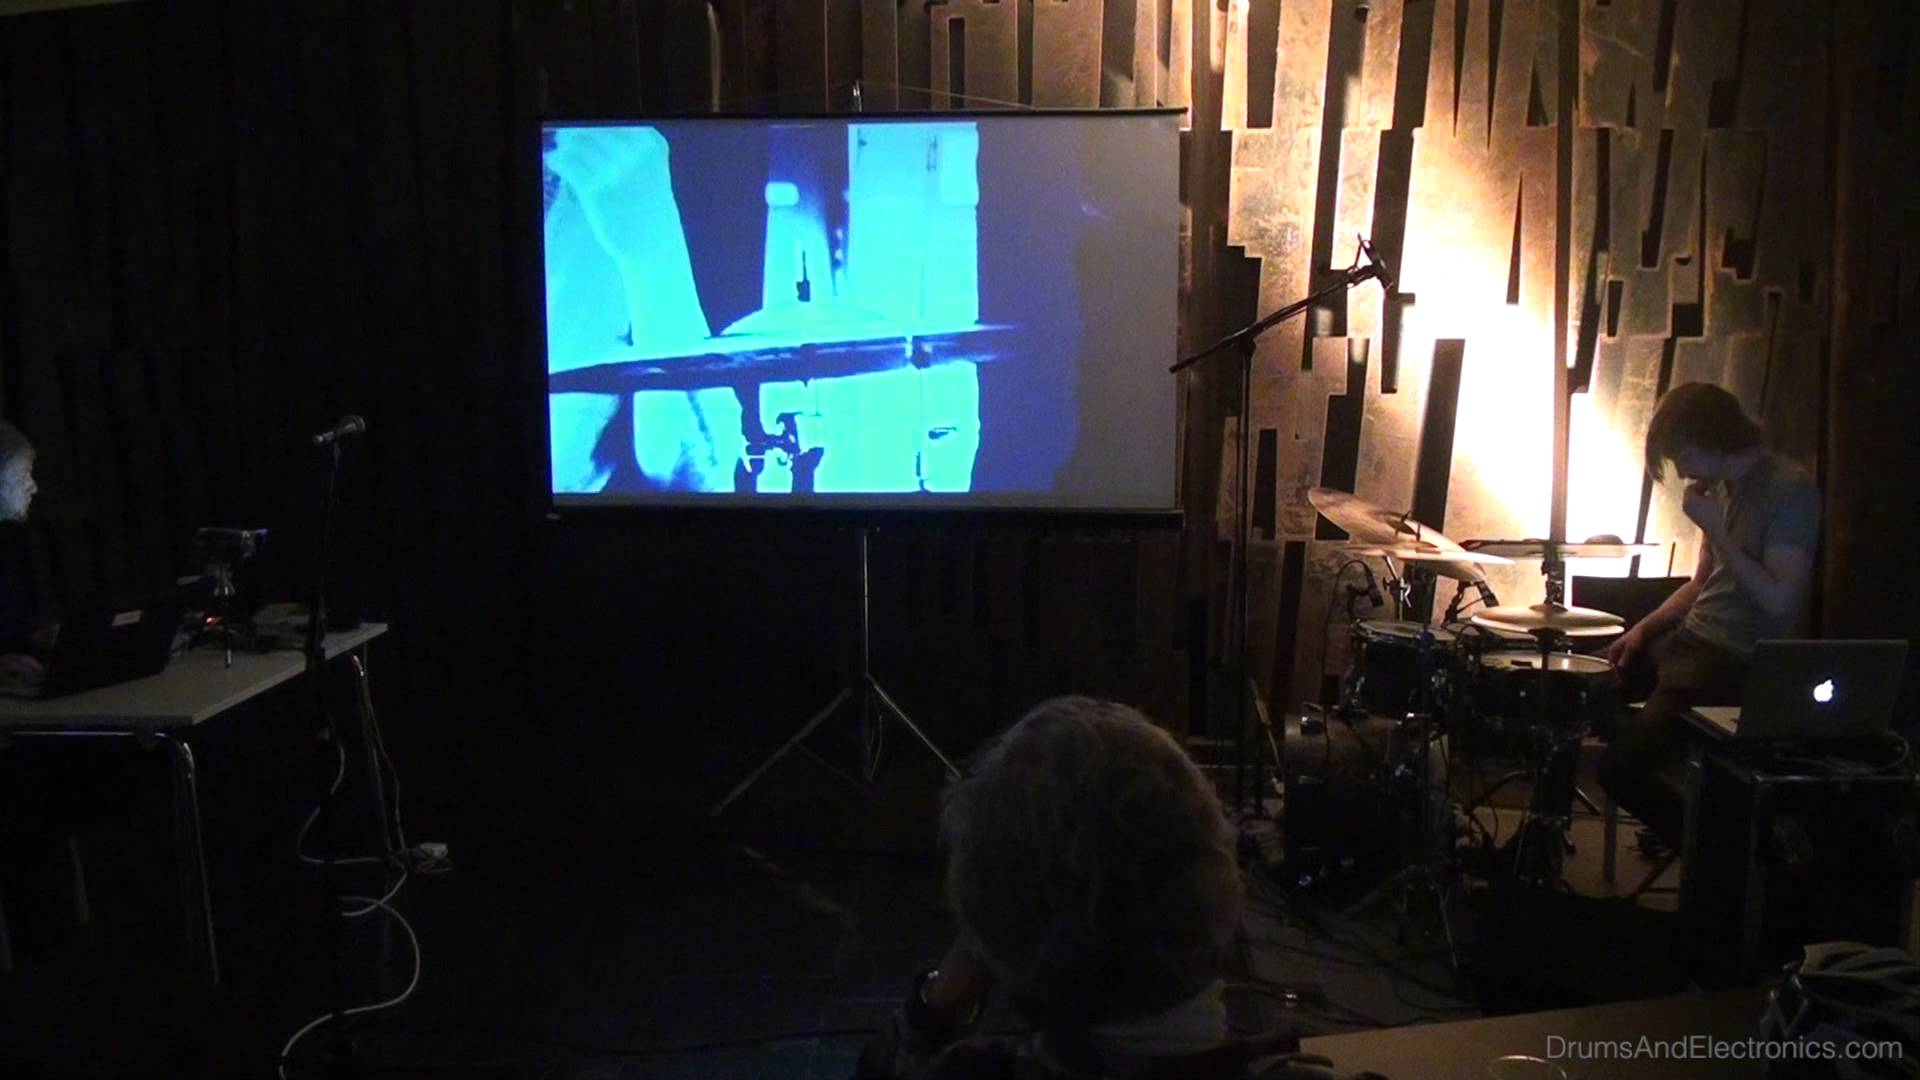 Performing with live improvised visuals, drums and electronics